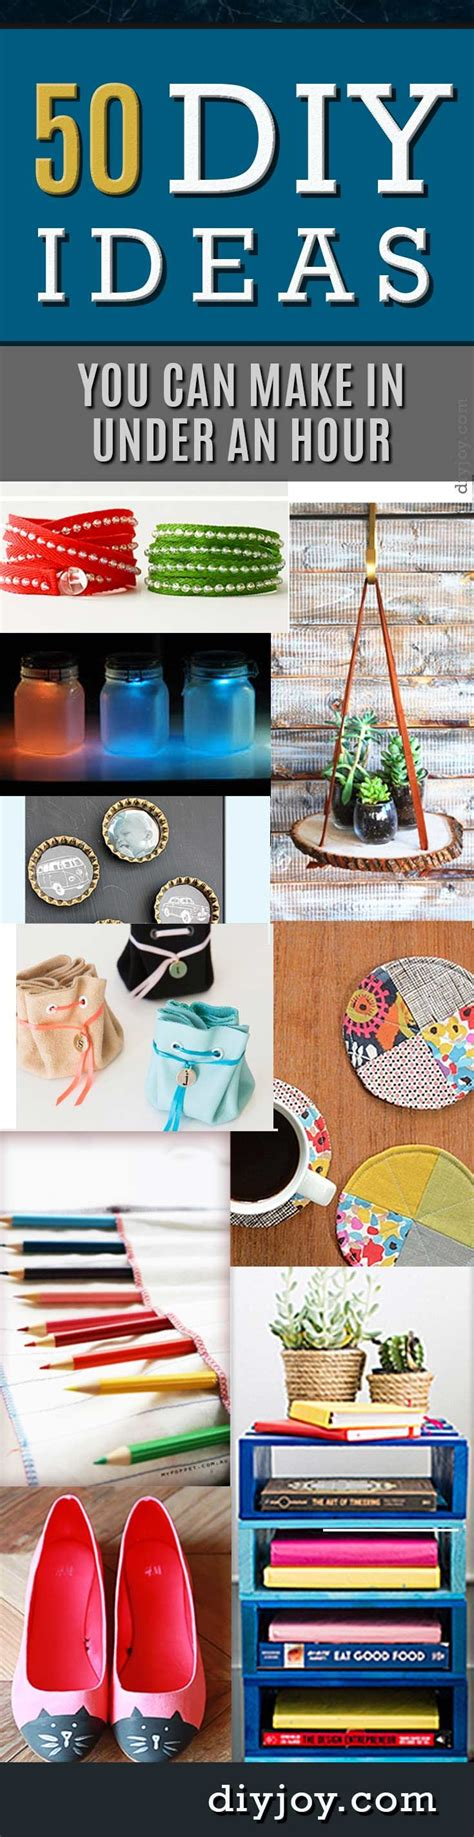 1 hour craft projects 120 best images about diy projects on creative